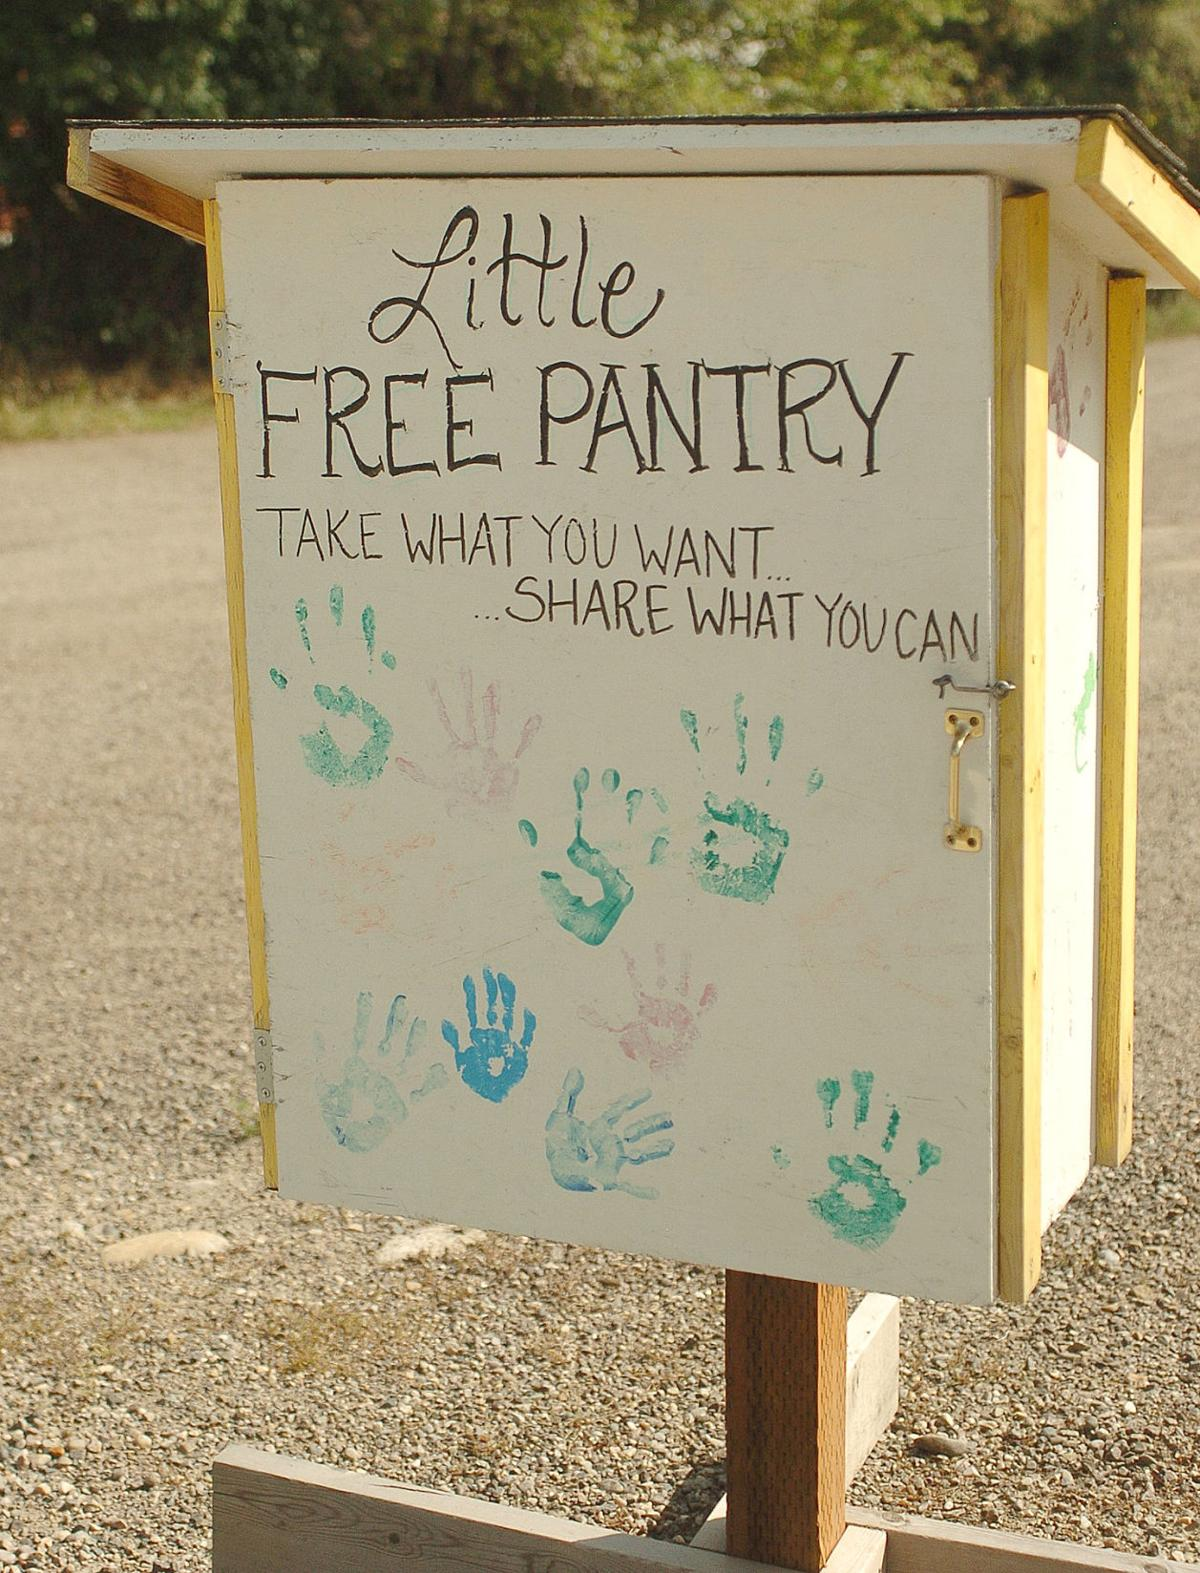 little food pantry 1 8.21